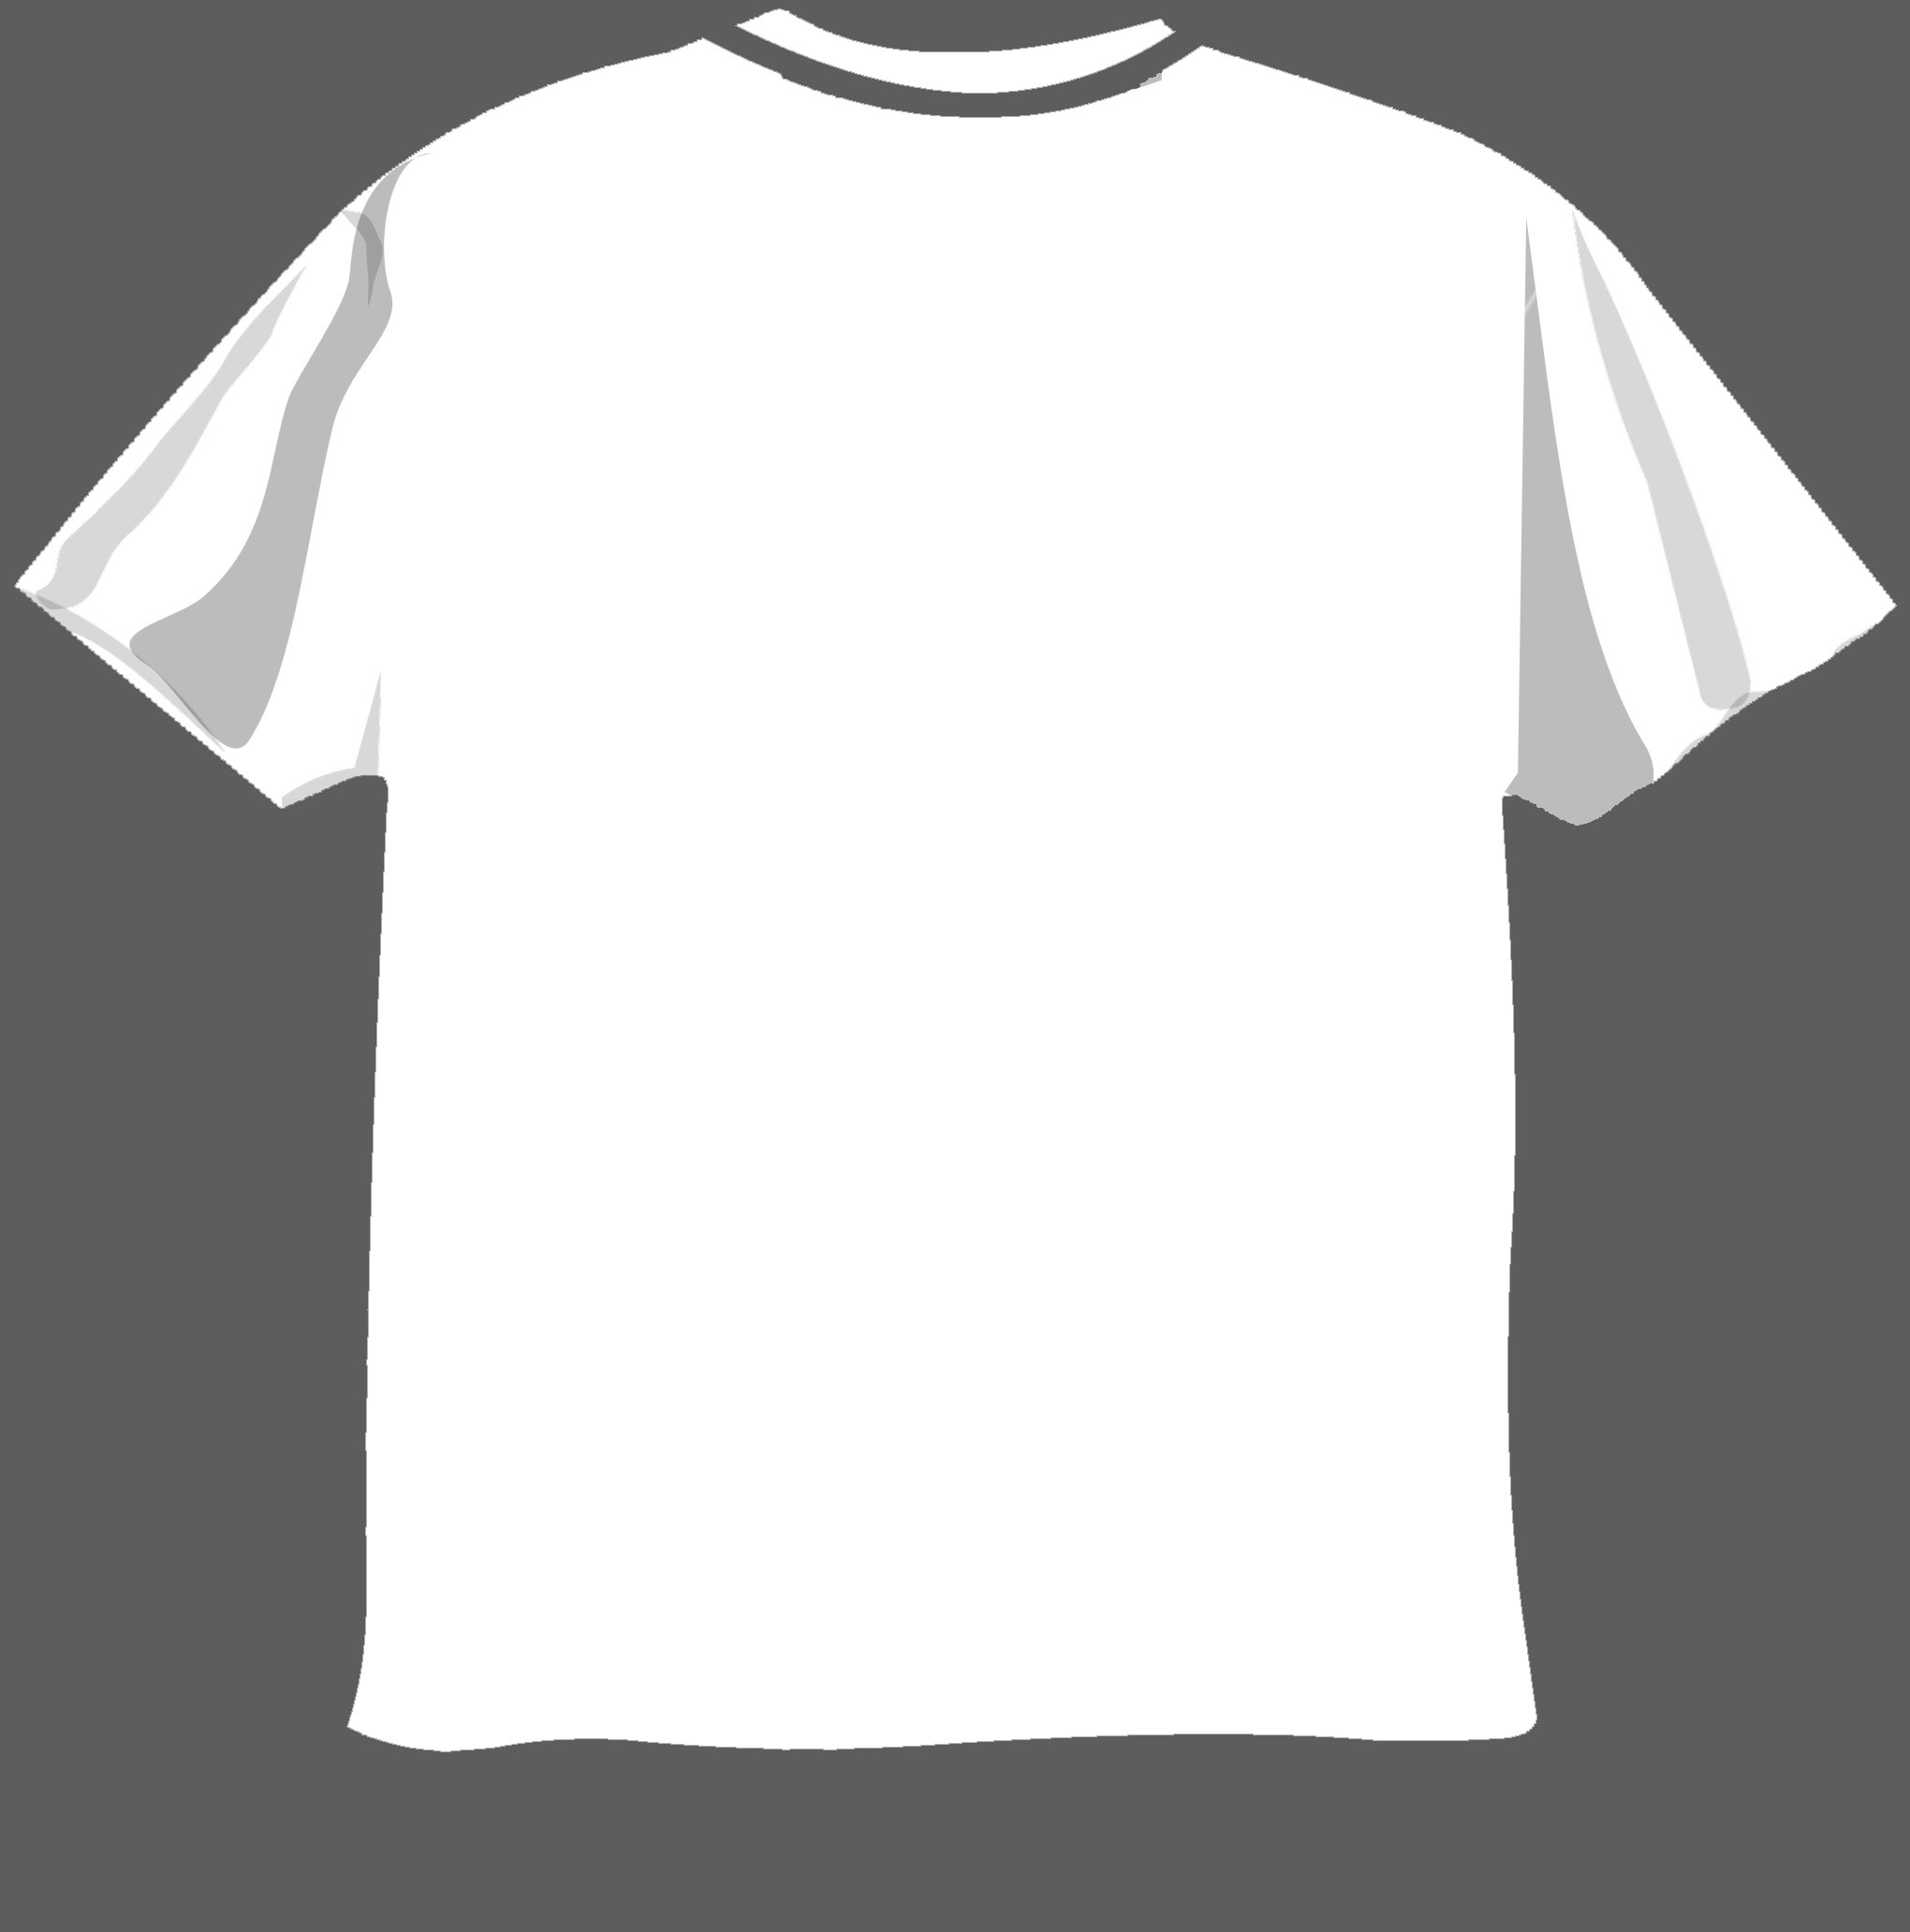 photoshop template t shirt wavy1 Everything Thats Anything BGfrZJ0T